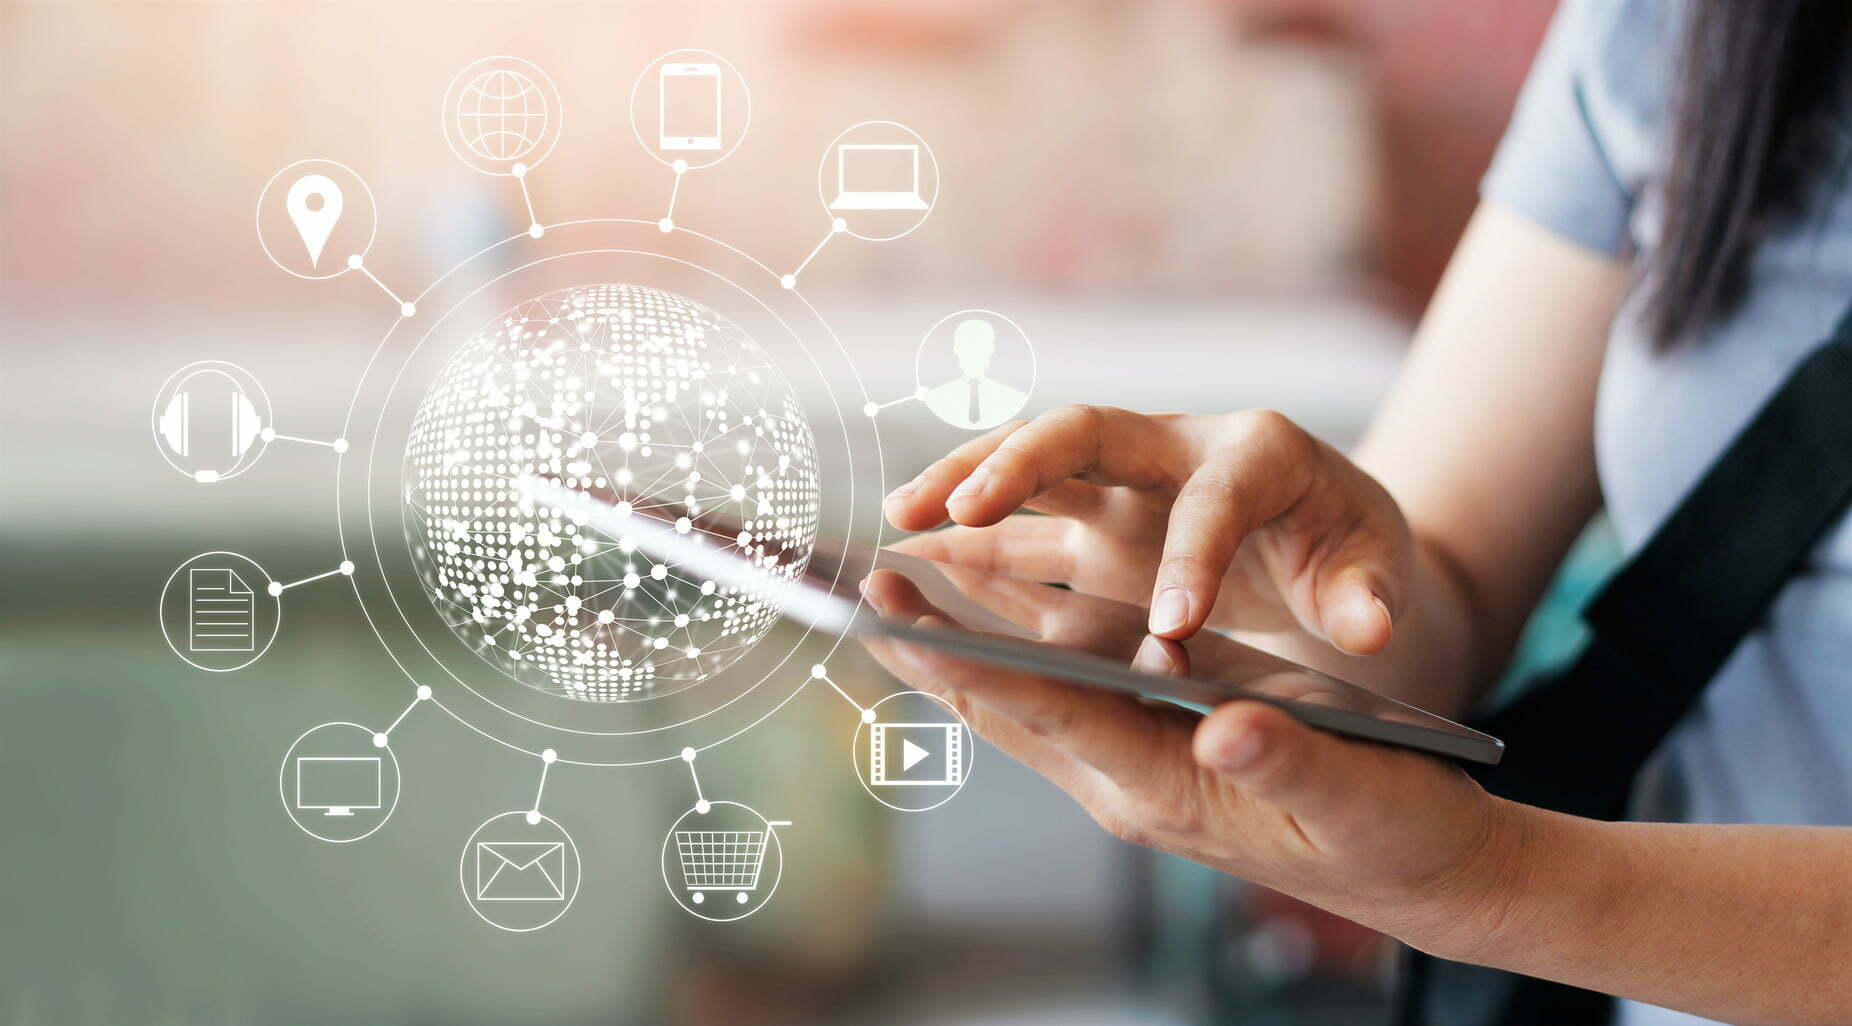 woman using mobile payments online shopping and icon customer network connection on screen m banking and omni channel - California Mutual Partners with Invoice Cloud to Improve Insurer's Efficiency and Simplify Process for Policyholders